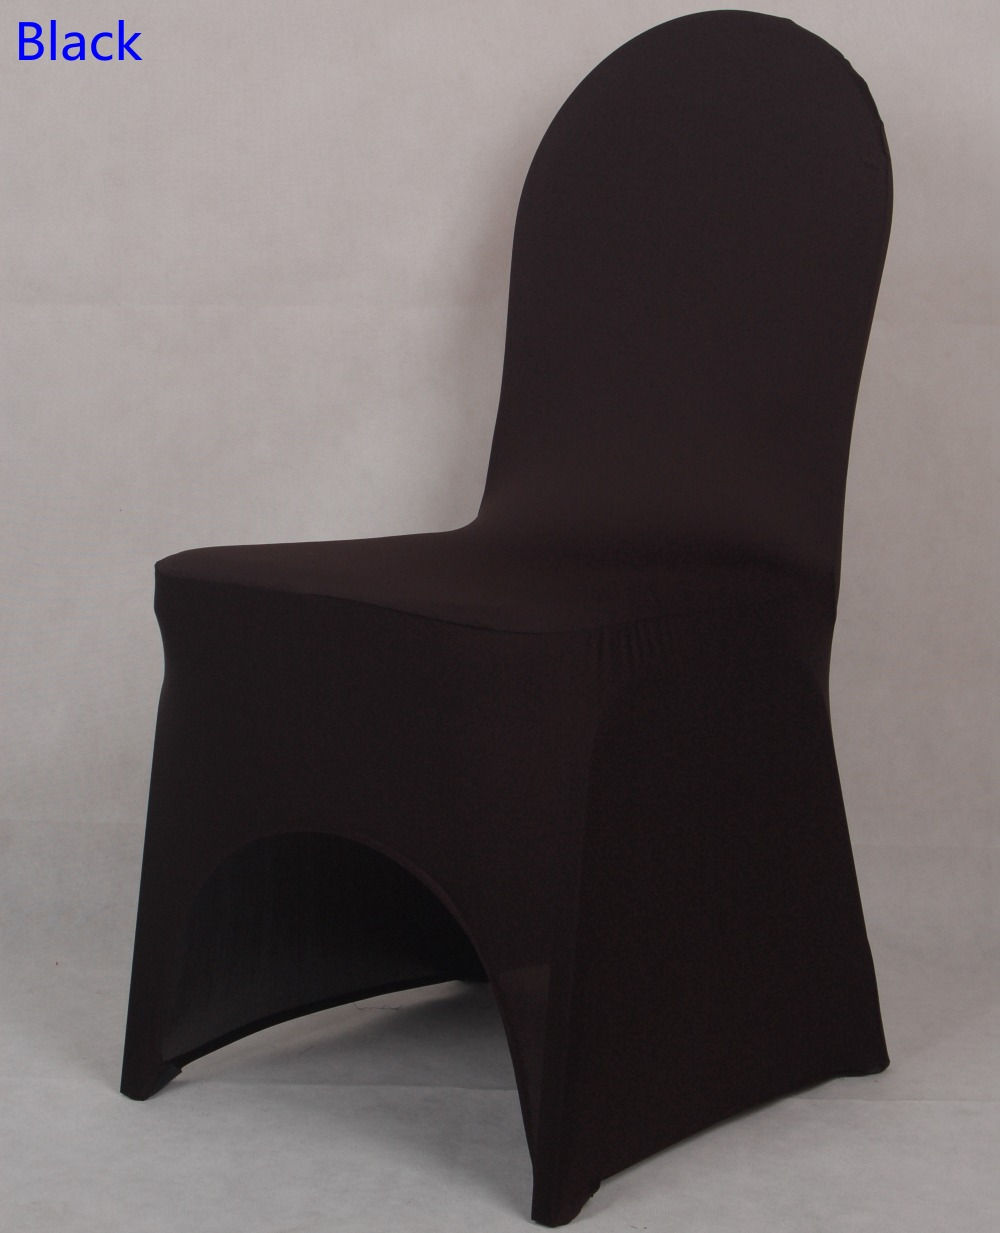 Swell Us 1 6 Colour Black Lycra Chair Cover For Wedding Decoration Banquet Spandex Chair Cover Wholesale Dinning Chairs Arch Front Open In Chair Cover Andrewgaddart Wooden Chair Designs For Living Room Andrewgaddartcom